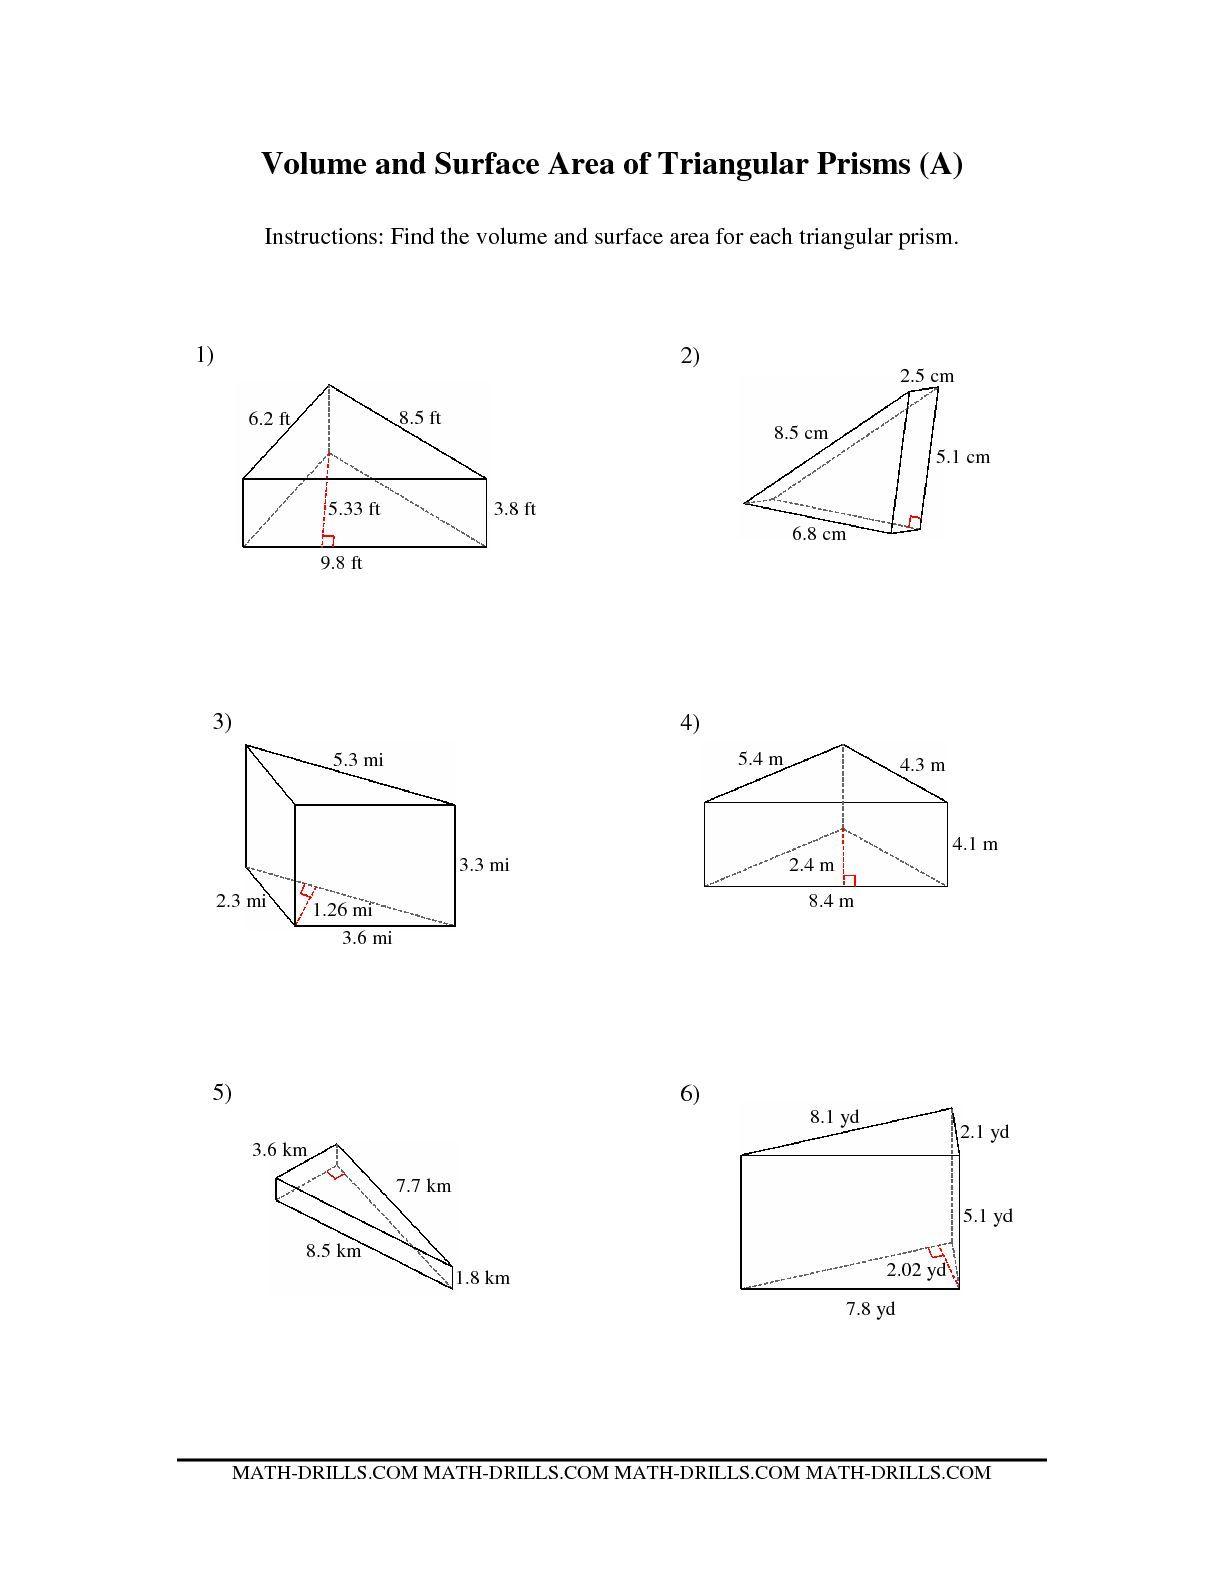 worksheet Surface Area Of Triangular Prism Worksheet the volume and surface area of triangular prisms a math worksheet from measurement